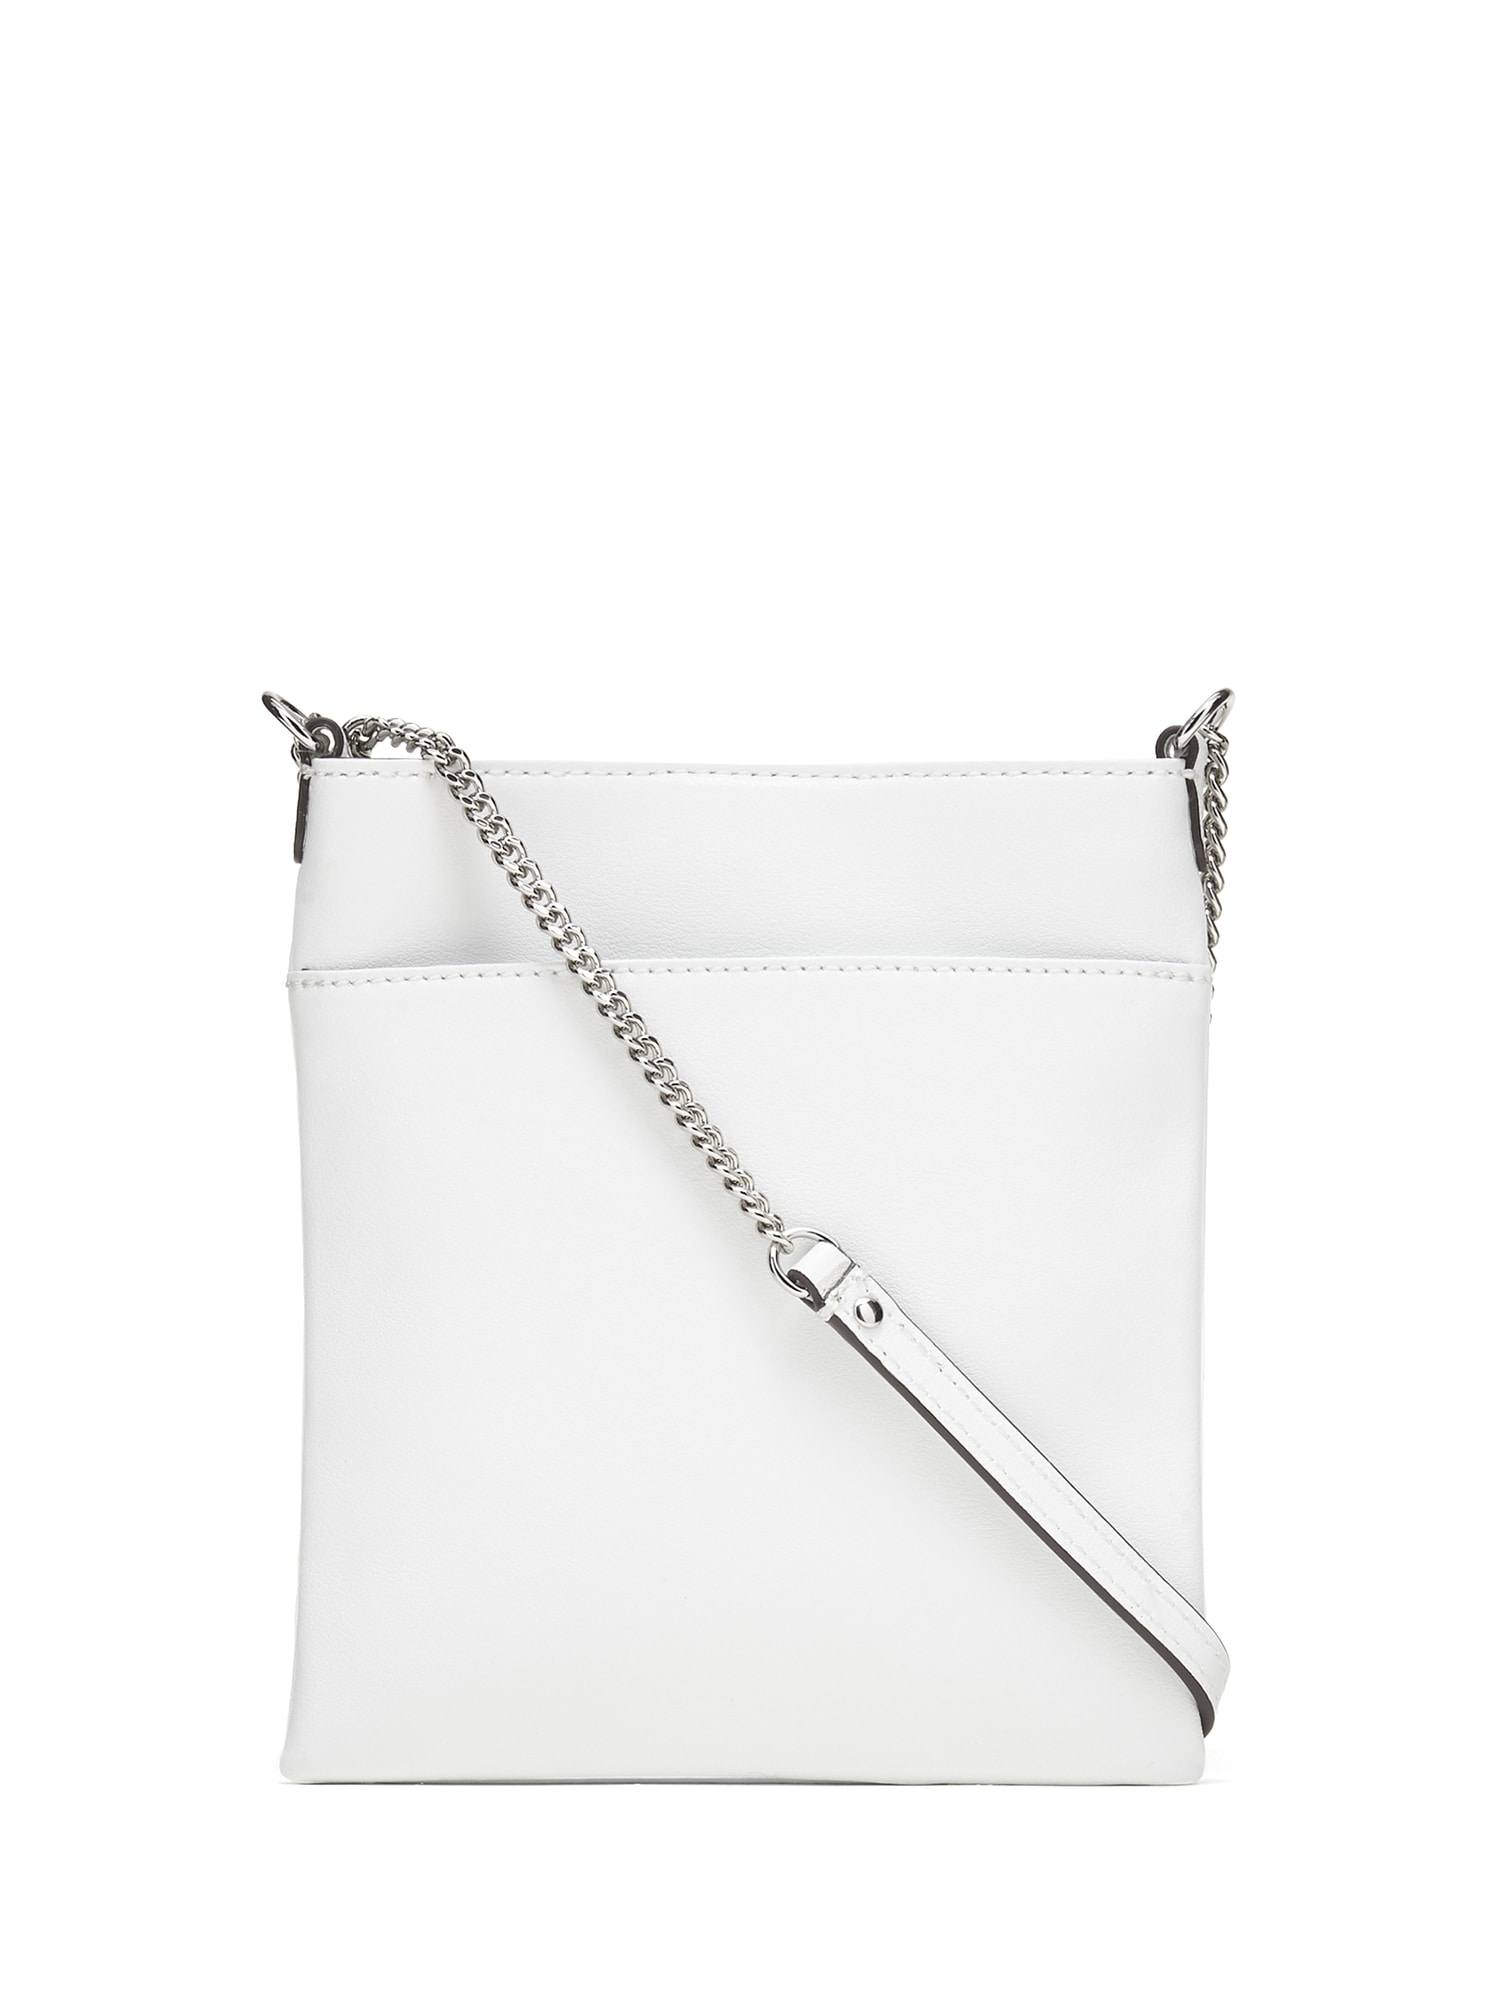 870f044482 Italian Leather Pouch Crossbody | Banana Republic